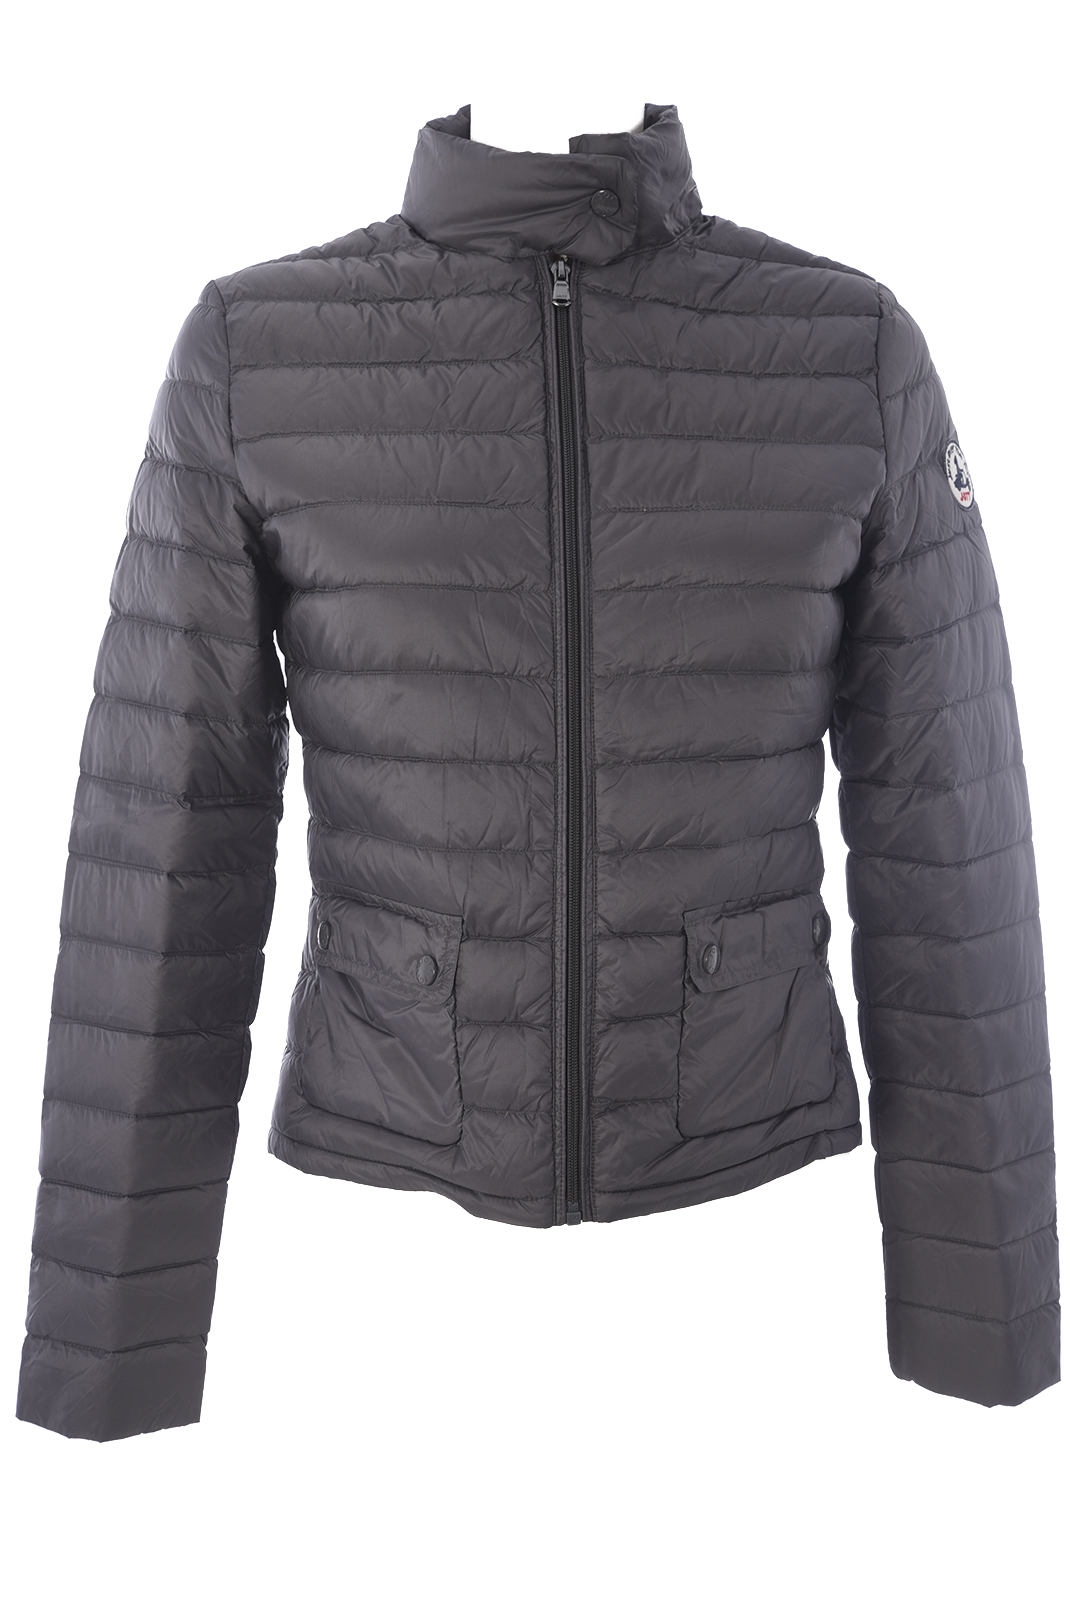 Blouson  Just over the top SONIA 504  ANTHRACITE